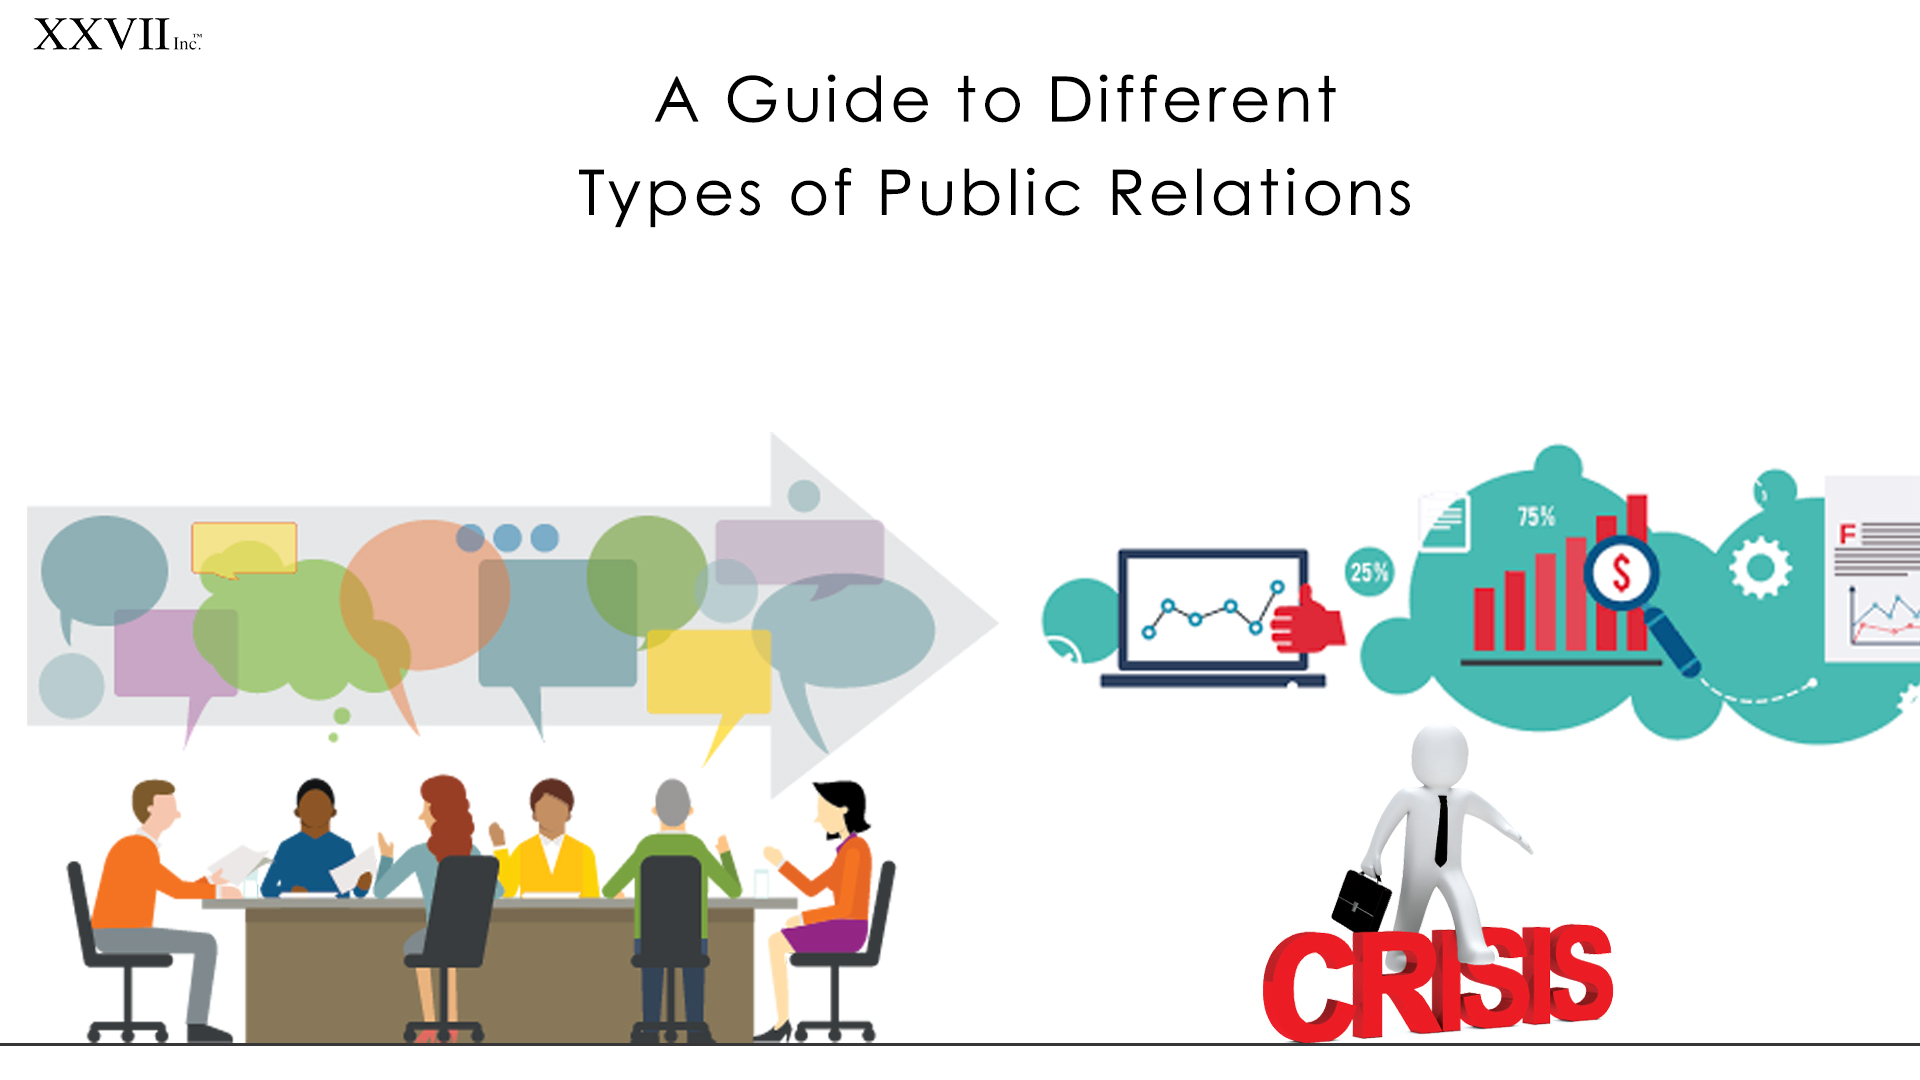 A Guide to Different Types of Public Relations